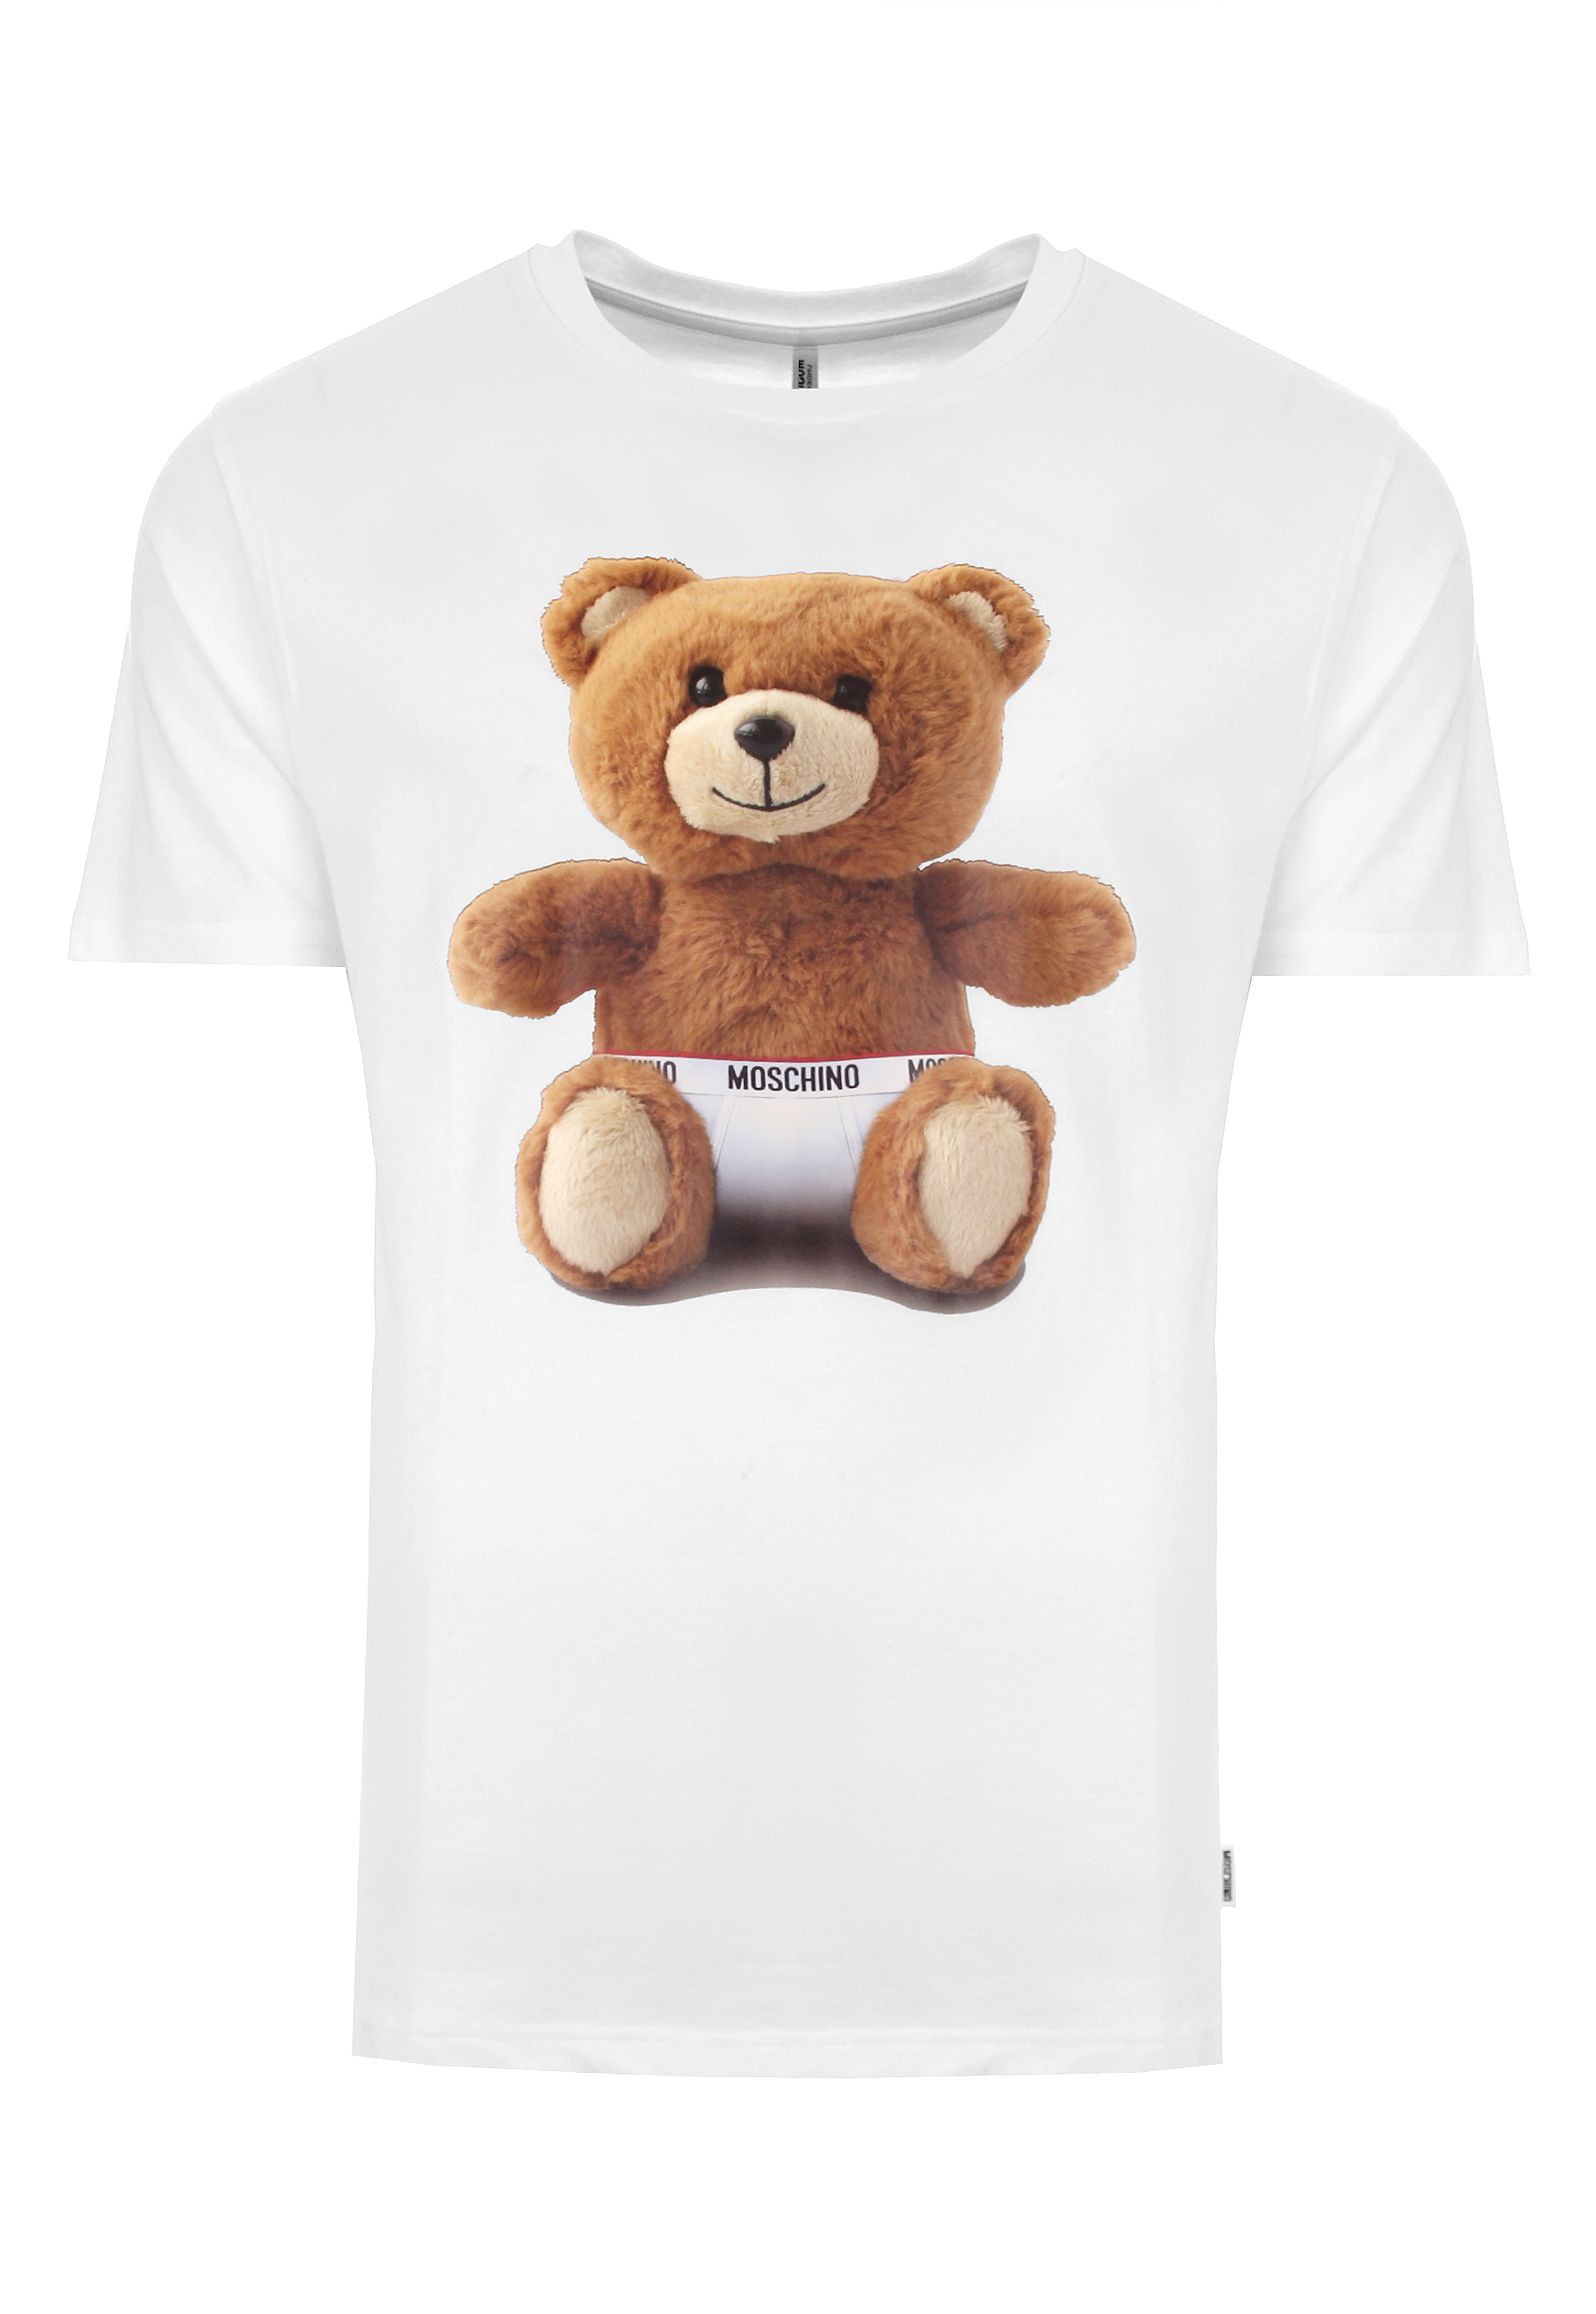 7d0ba9f4 Moschino Mens Teddy Bear T Shirt White in White for Men - Lyst